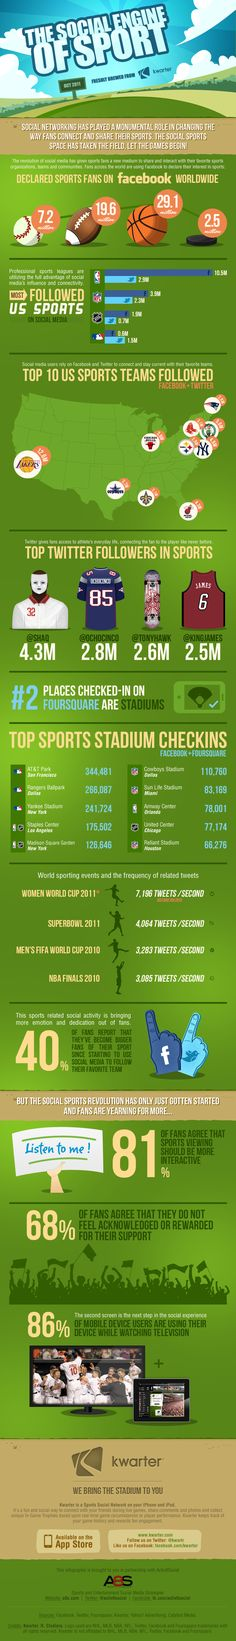 The Social Engine of Sport